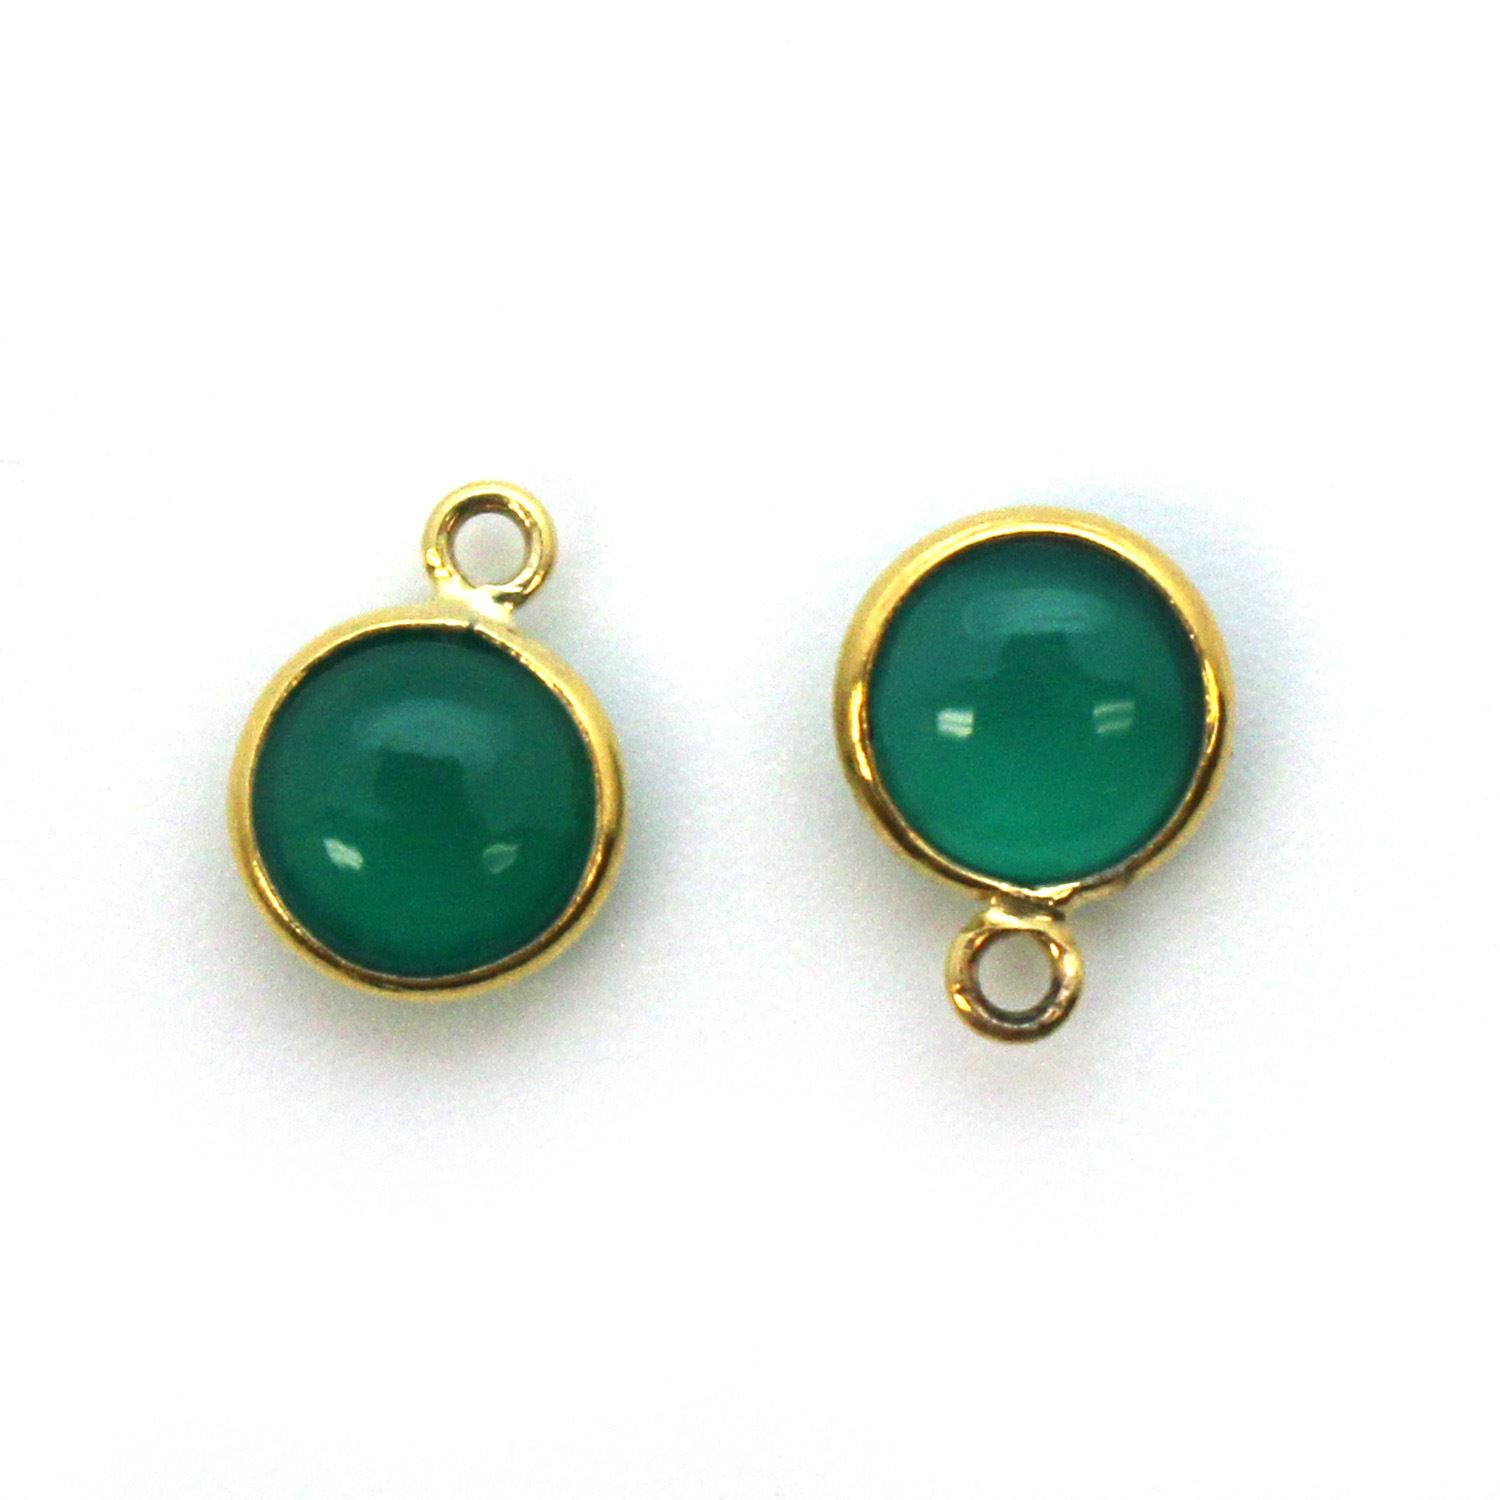 Bezel Charm Pendant - Gold Plated Sterling Silver Charm - Natural Green Onyx - Tiny Round Shape